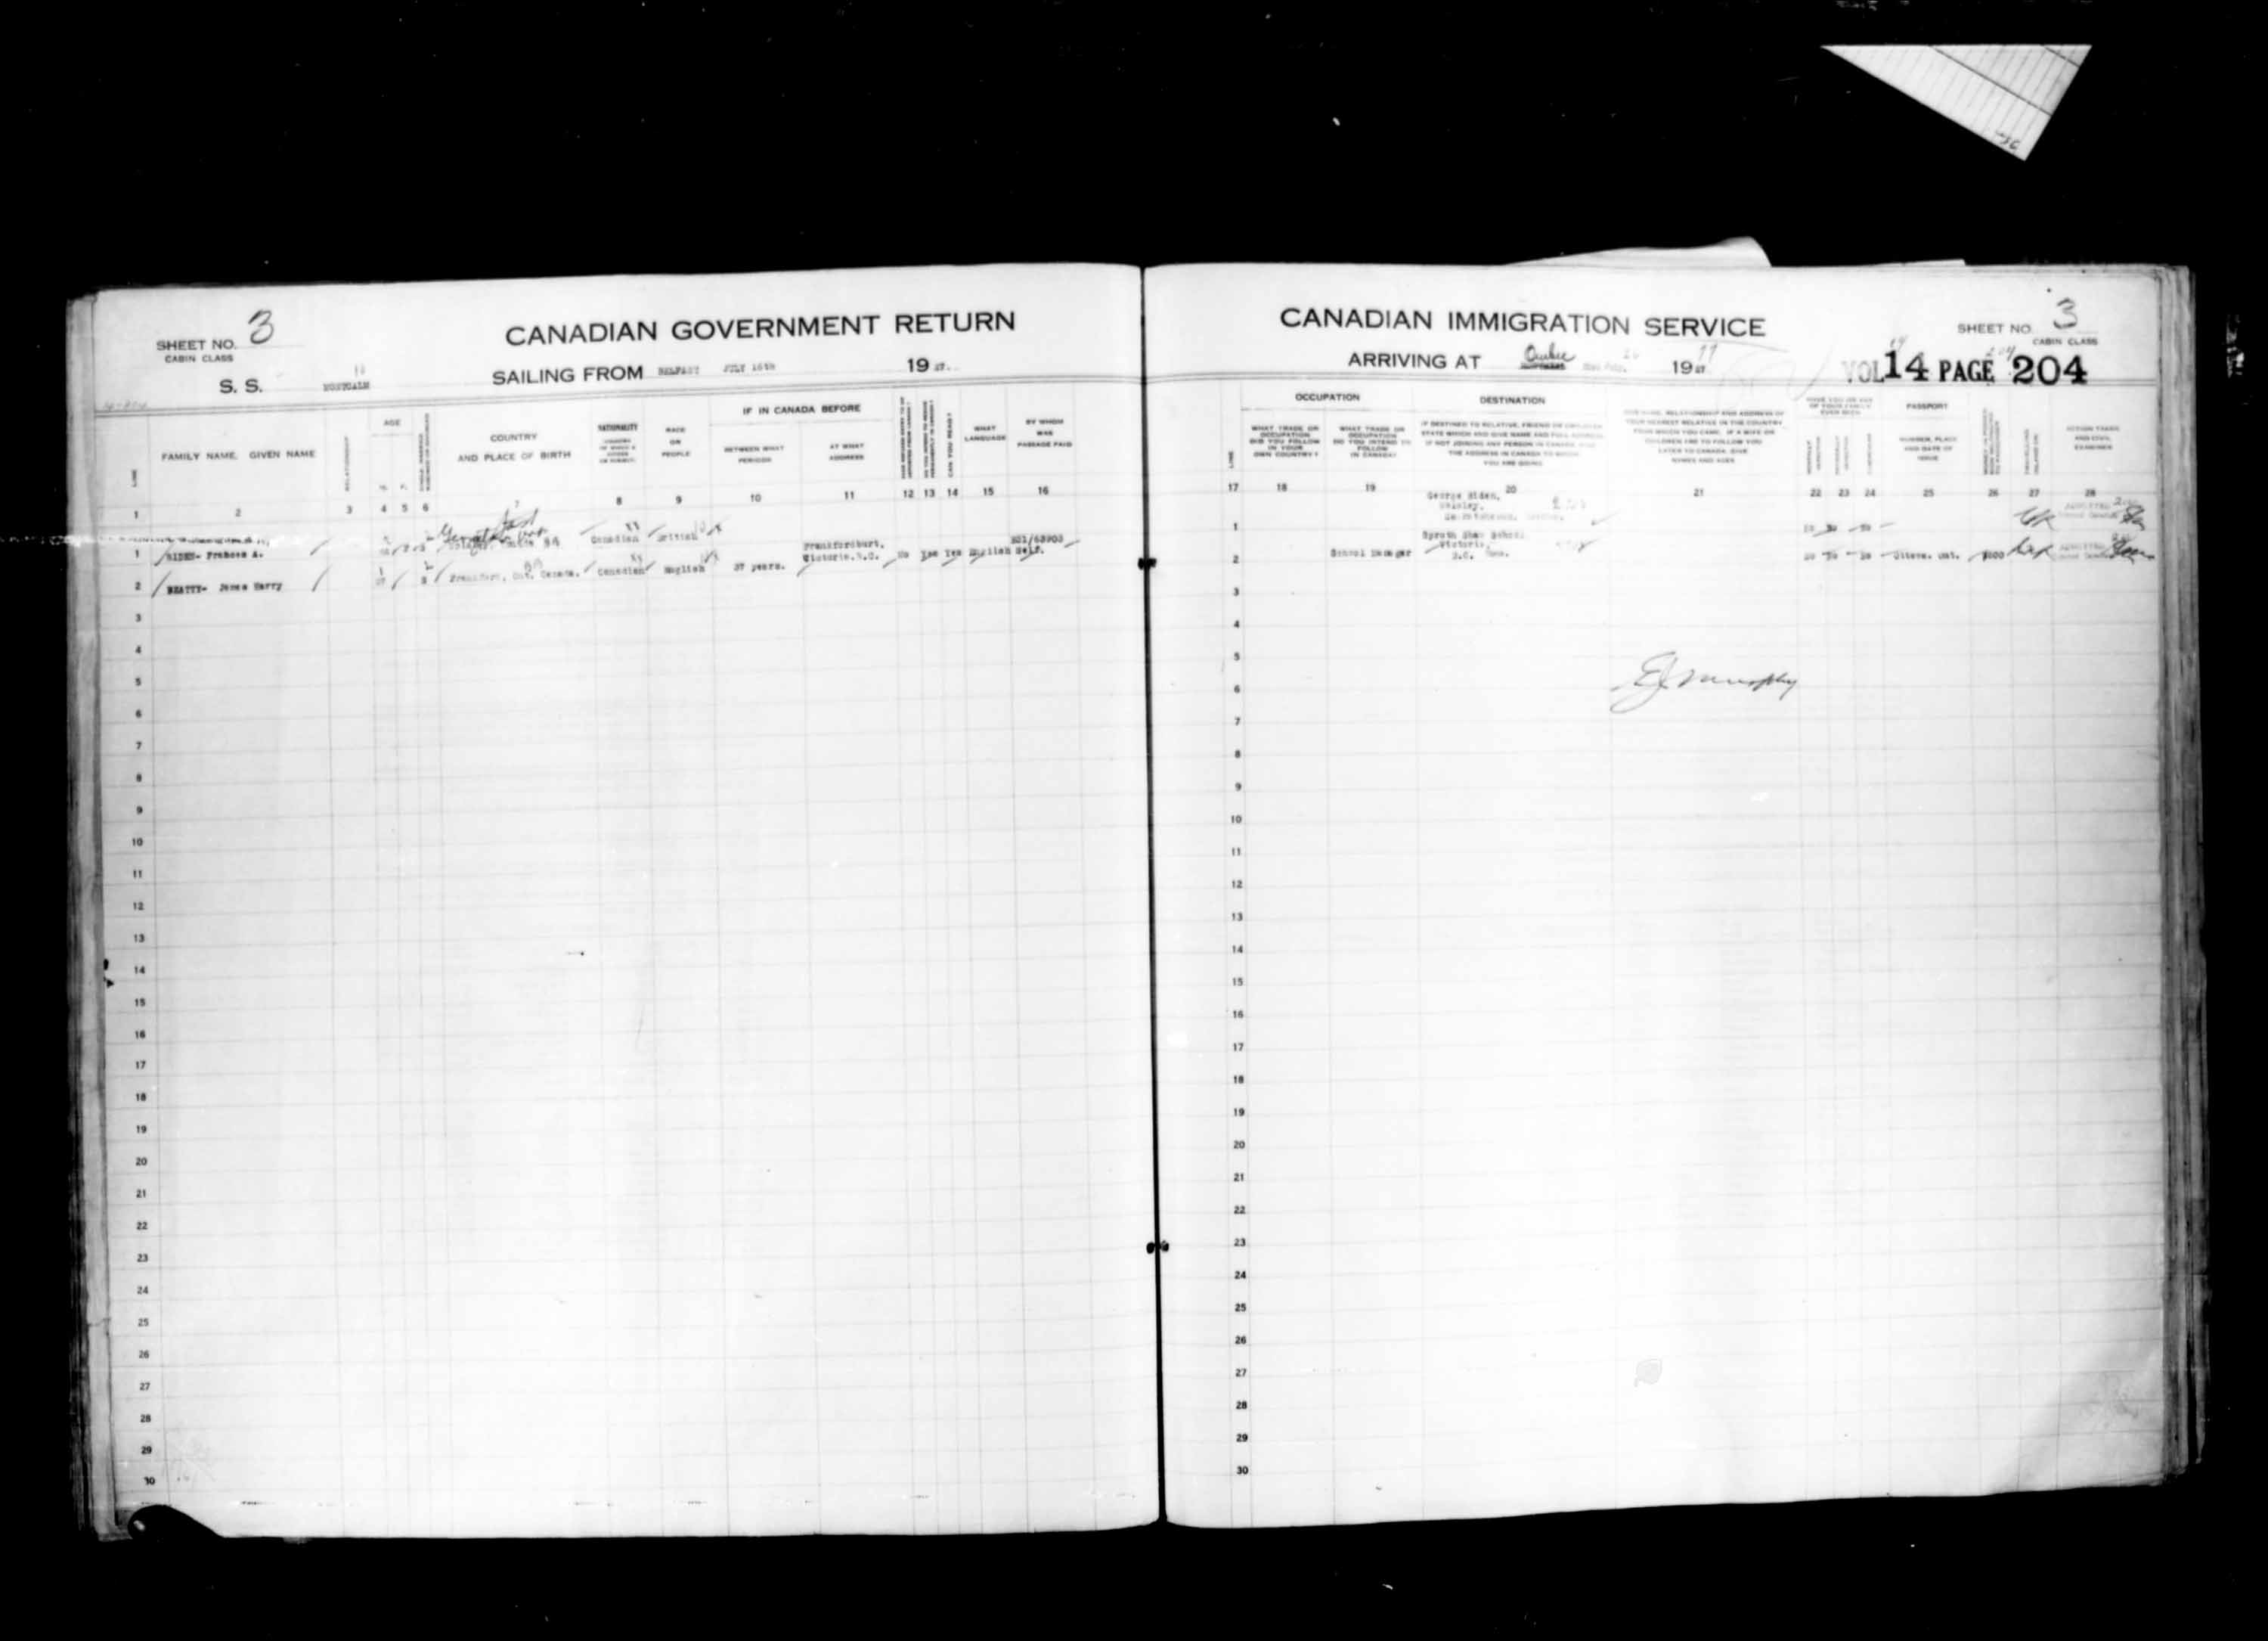 Title: Passenger Lists: Quebec City (1925-1935) - Mikan Number: 134839 - Microform: t-14736